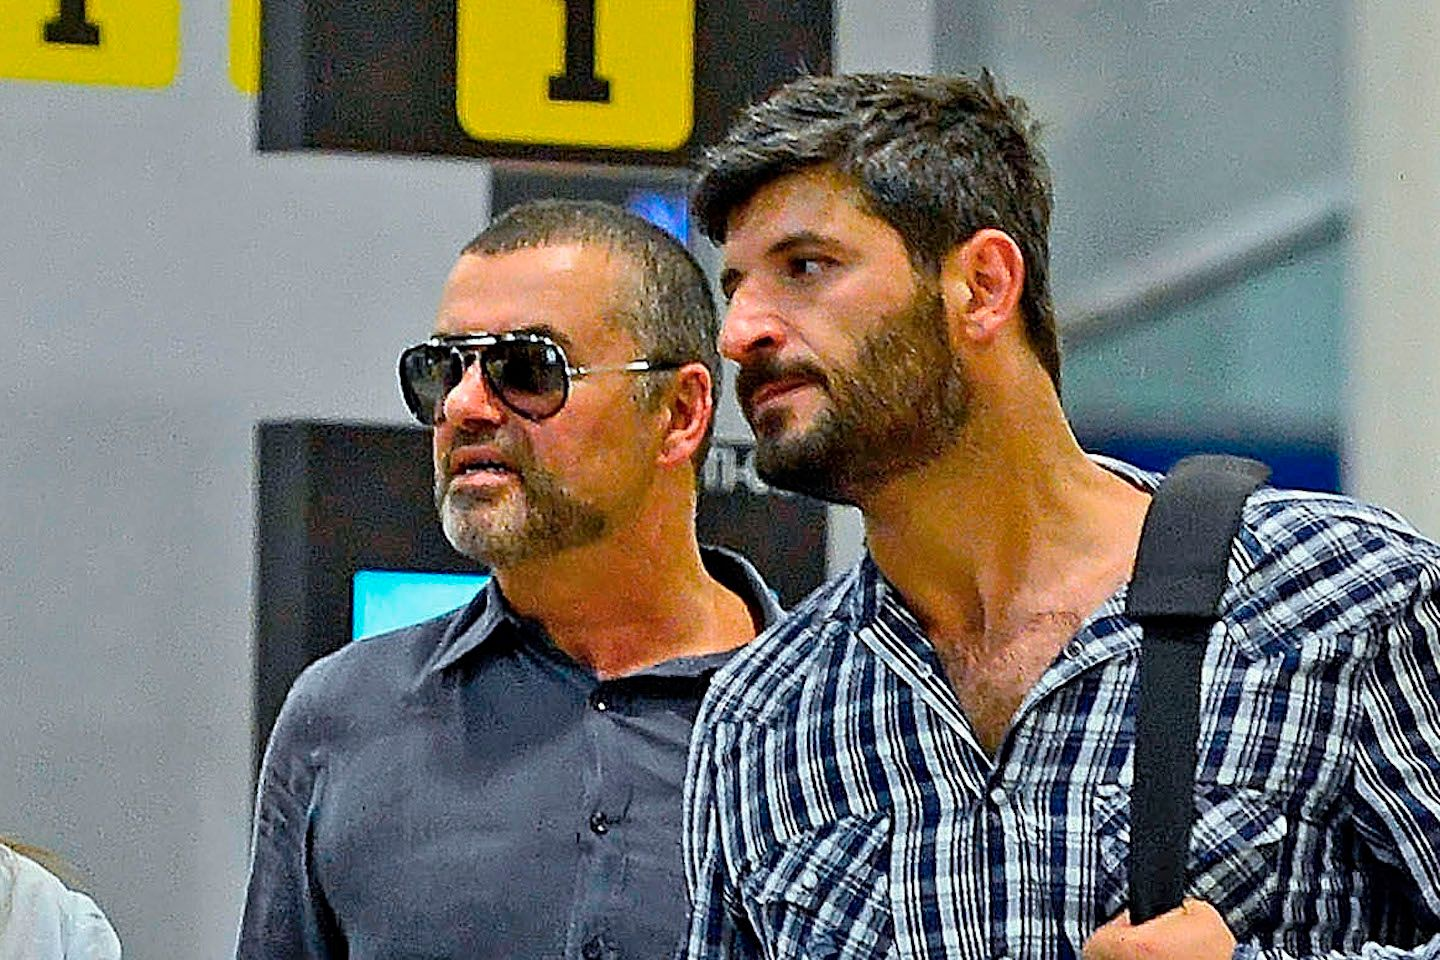 On again, off again boyfriend Fadi Fawaz was left out of George Michael's will